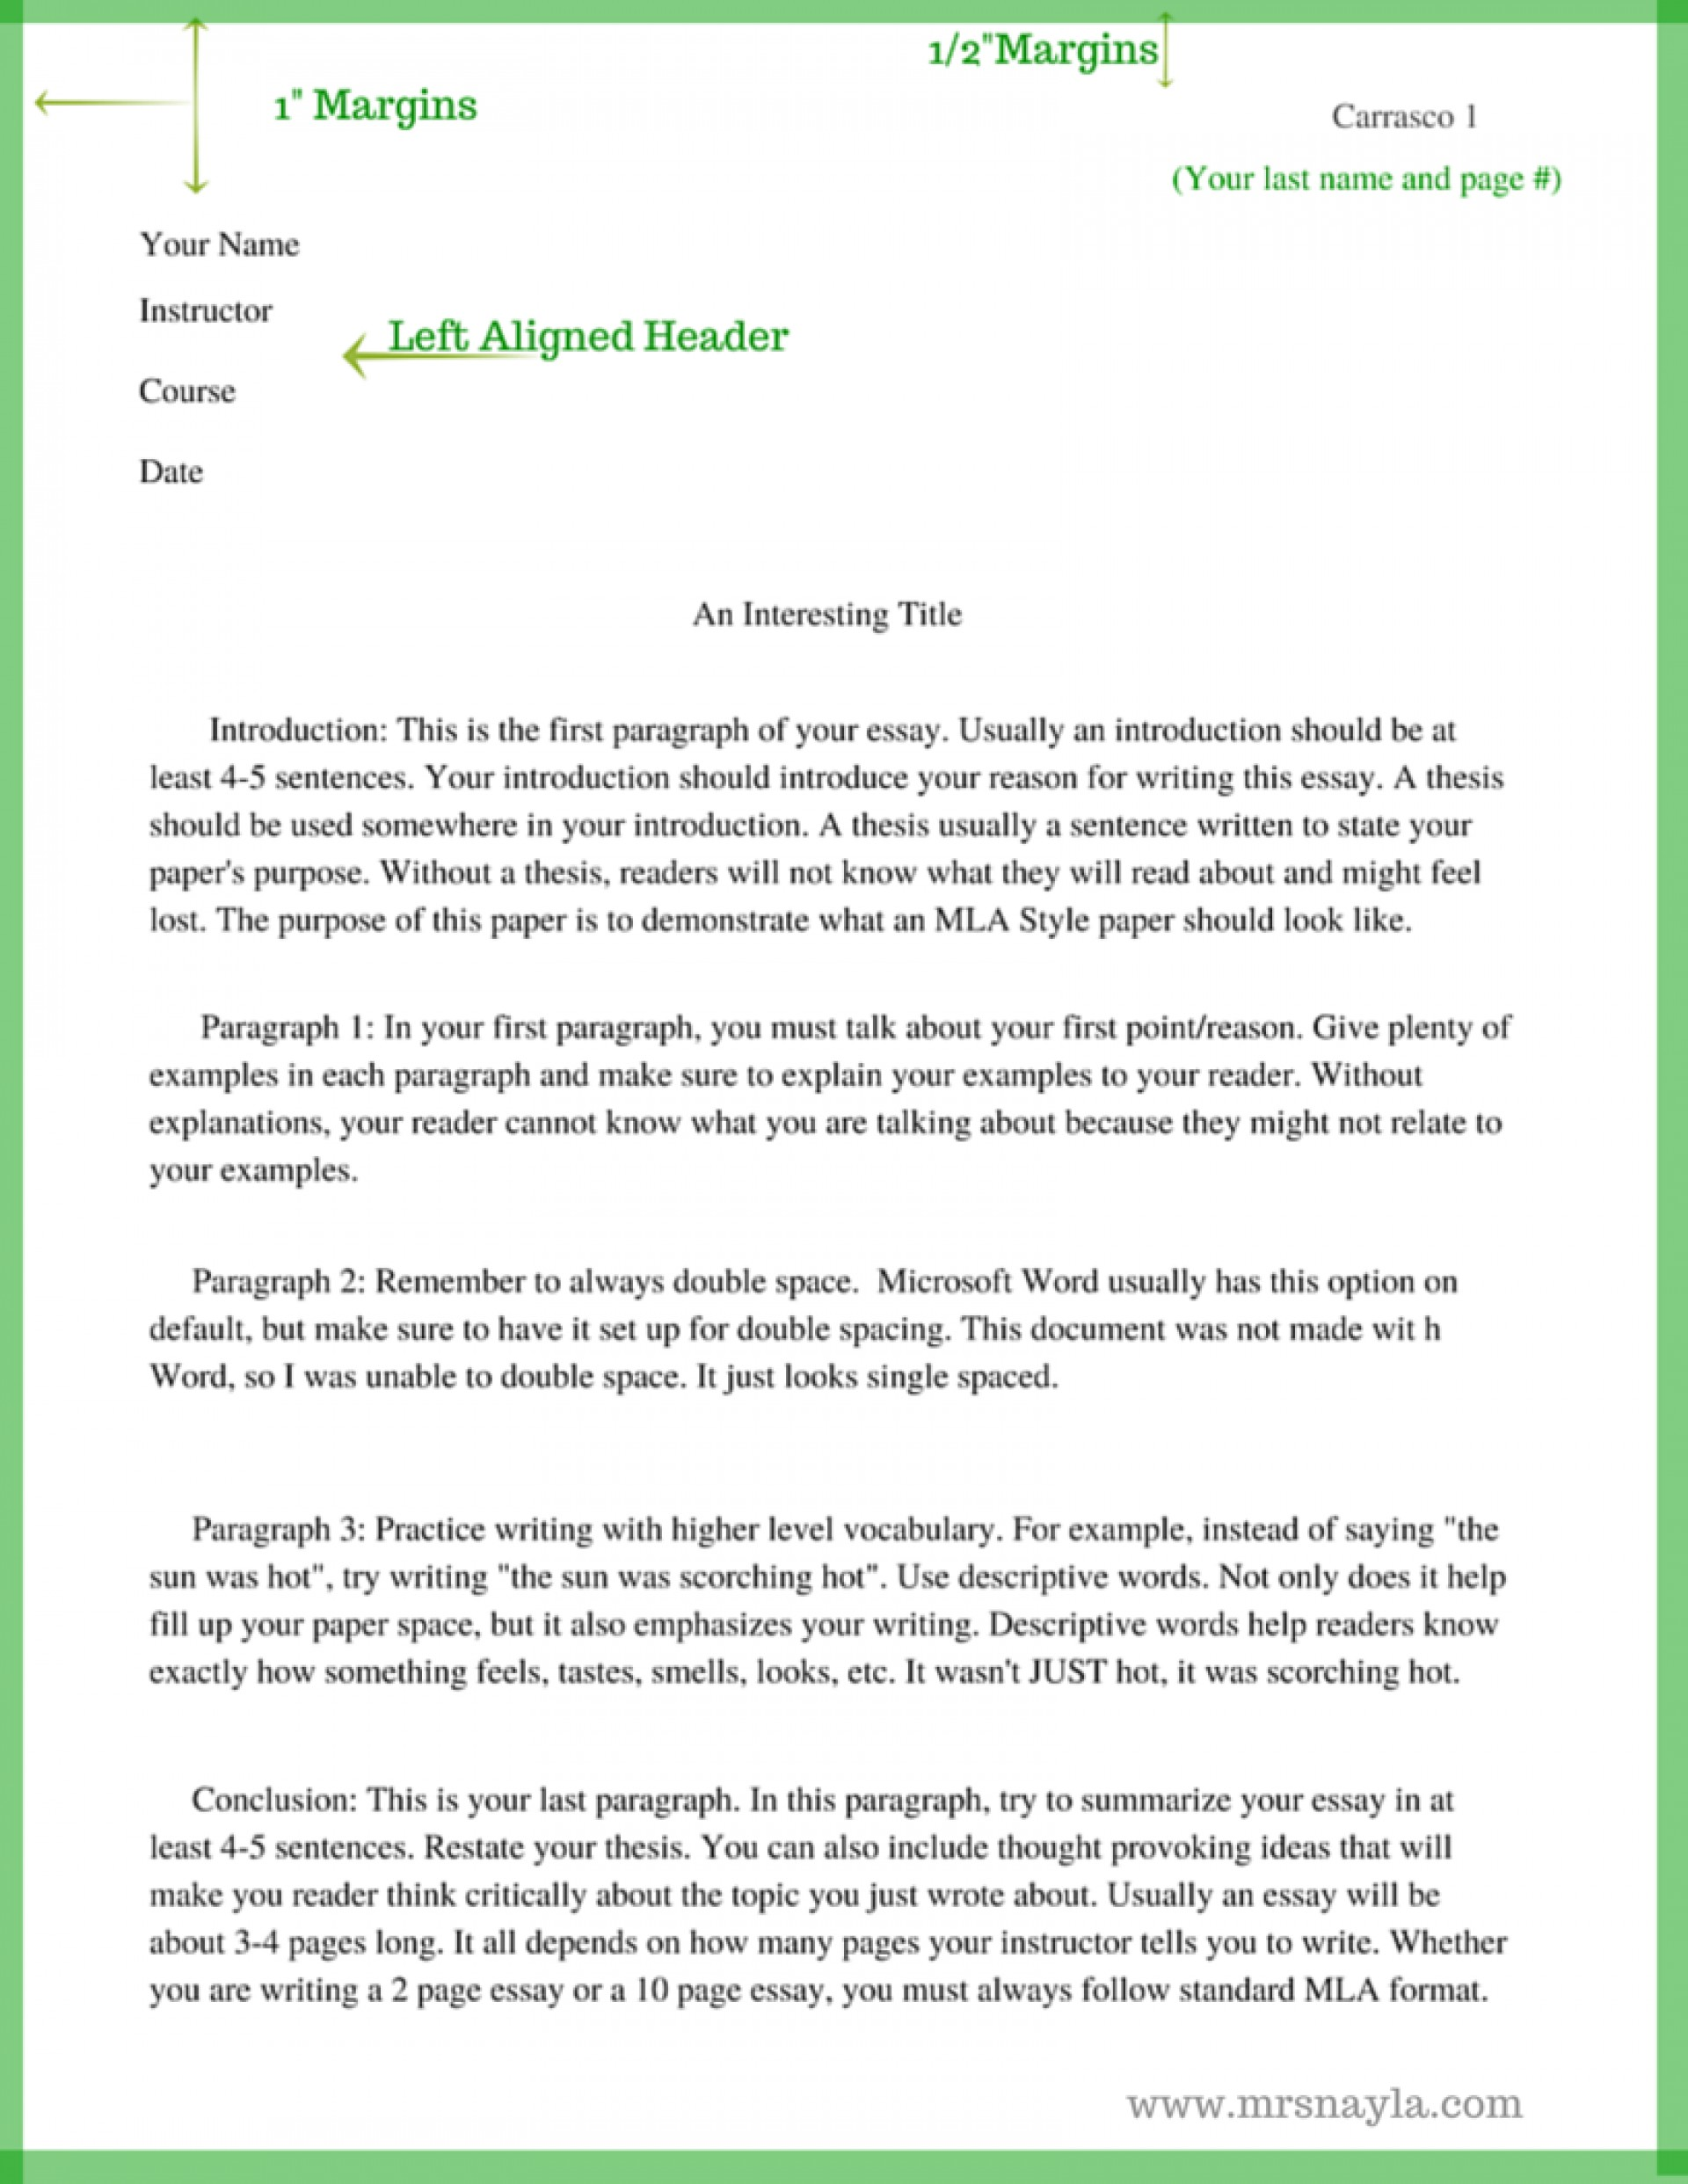 023 Essay Example Mla Format Fearsome 2018 With Cover Page 1920